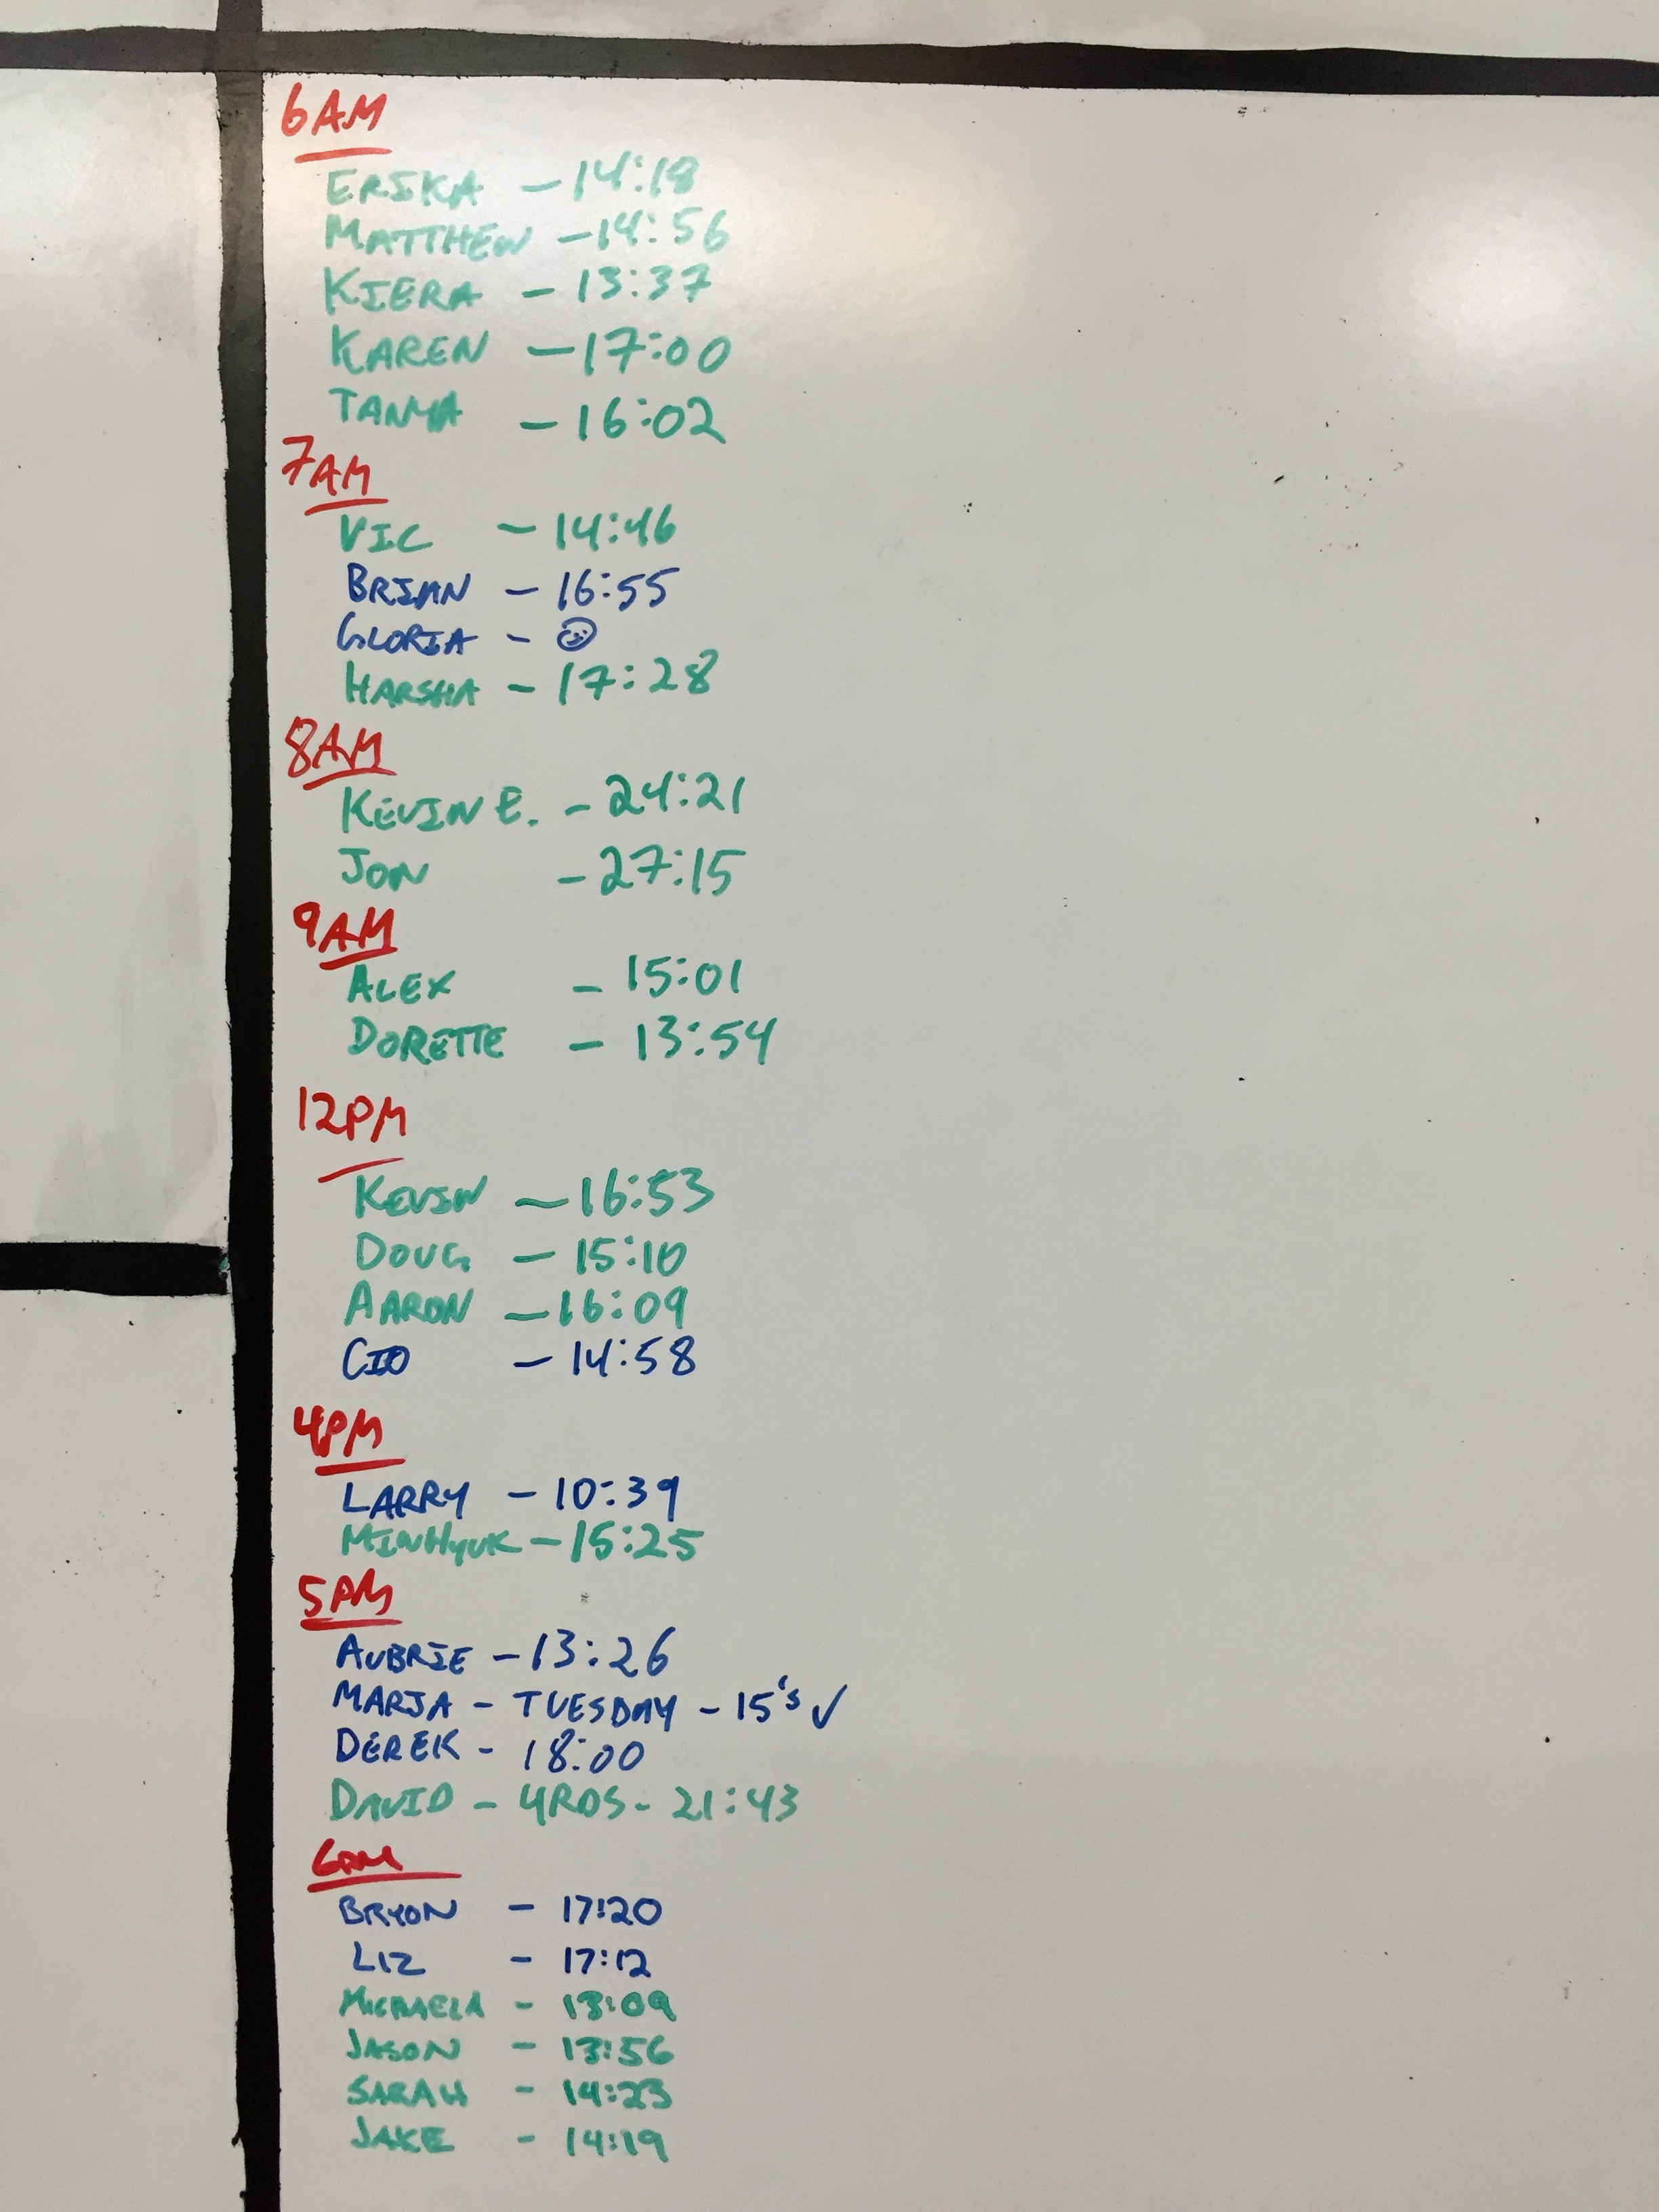 Oct 2 WOD Results